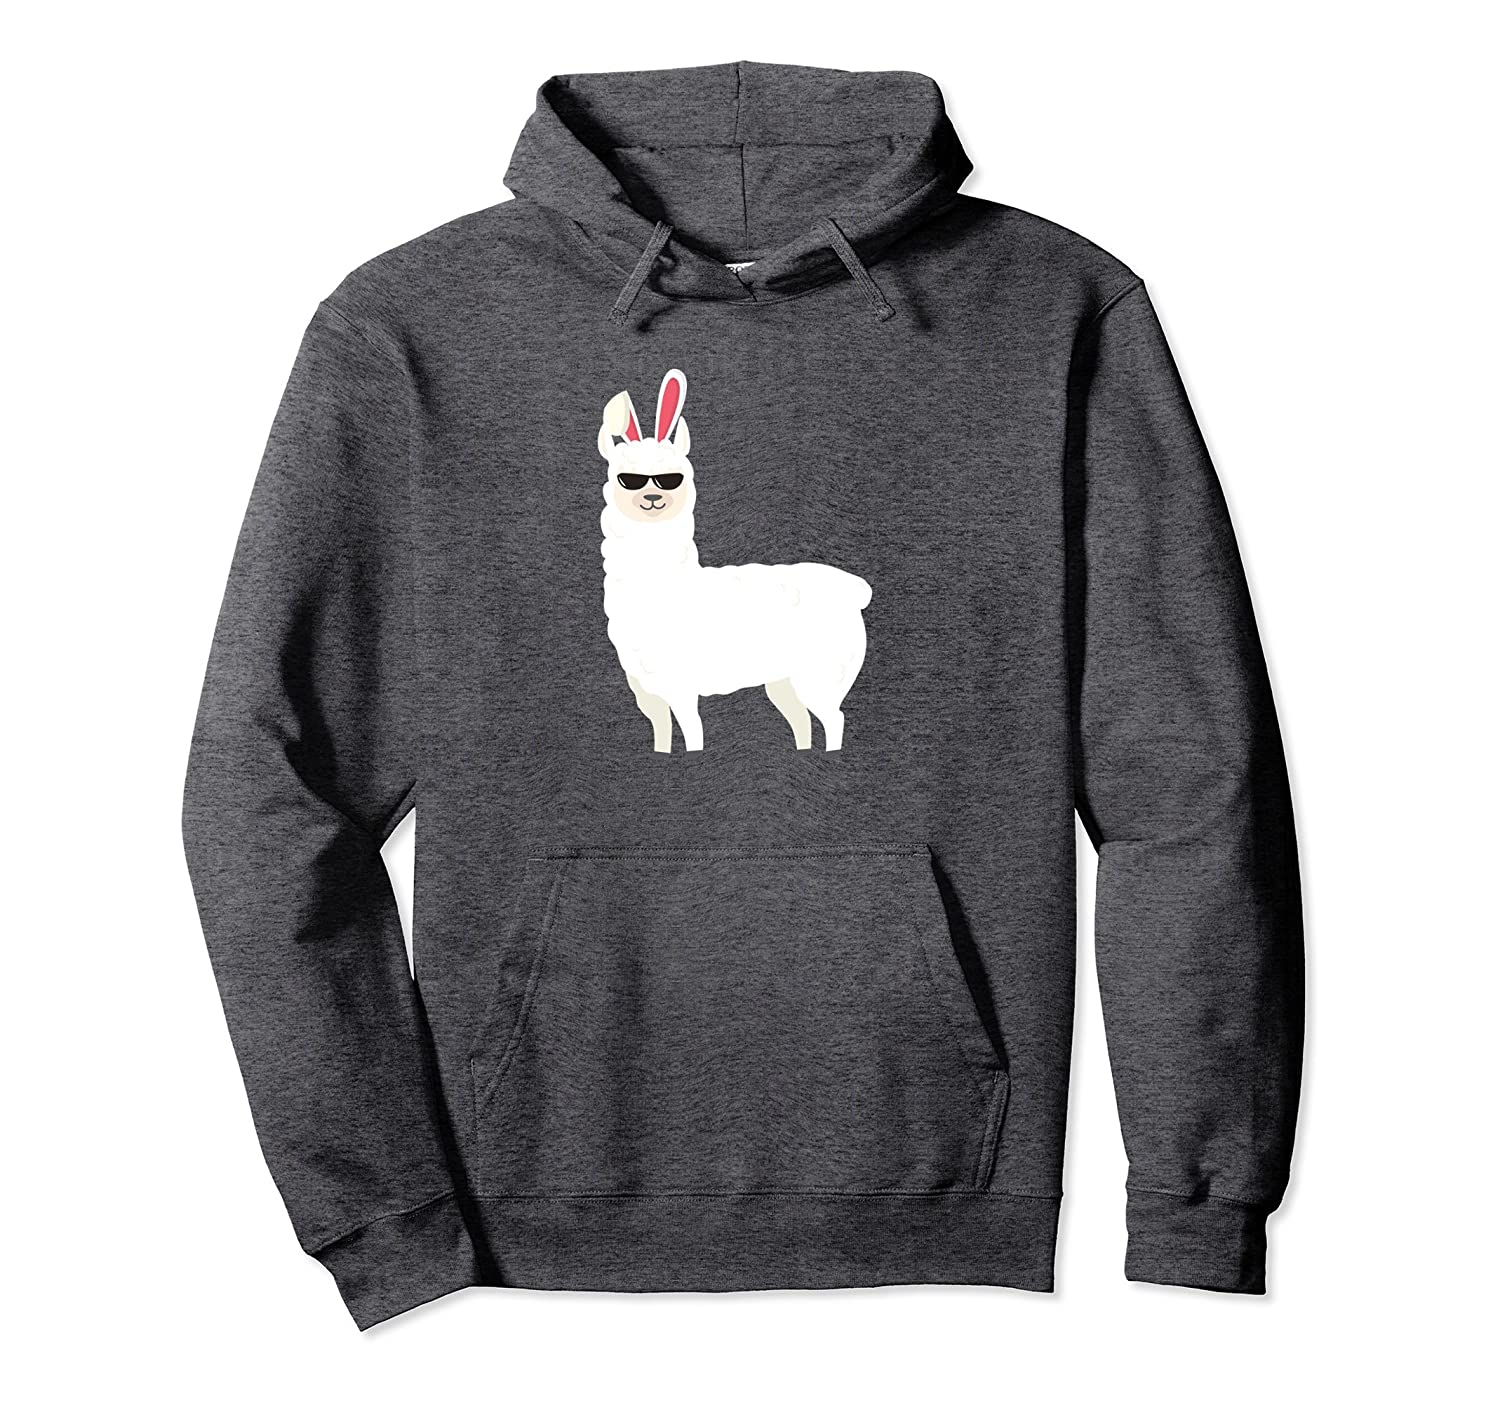 Easter Llama Bunny Hoodie Family Gift-TH